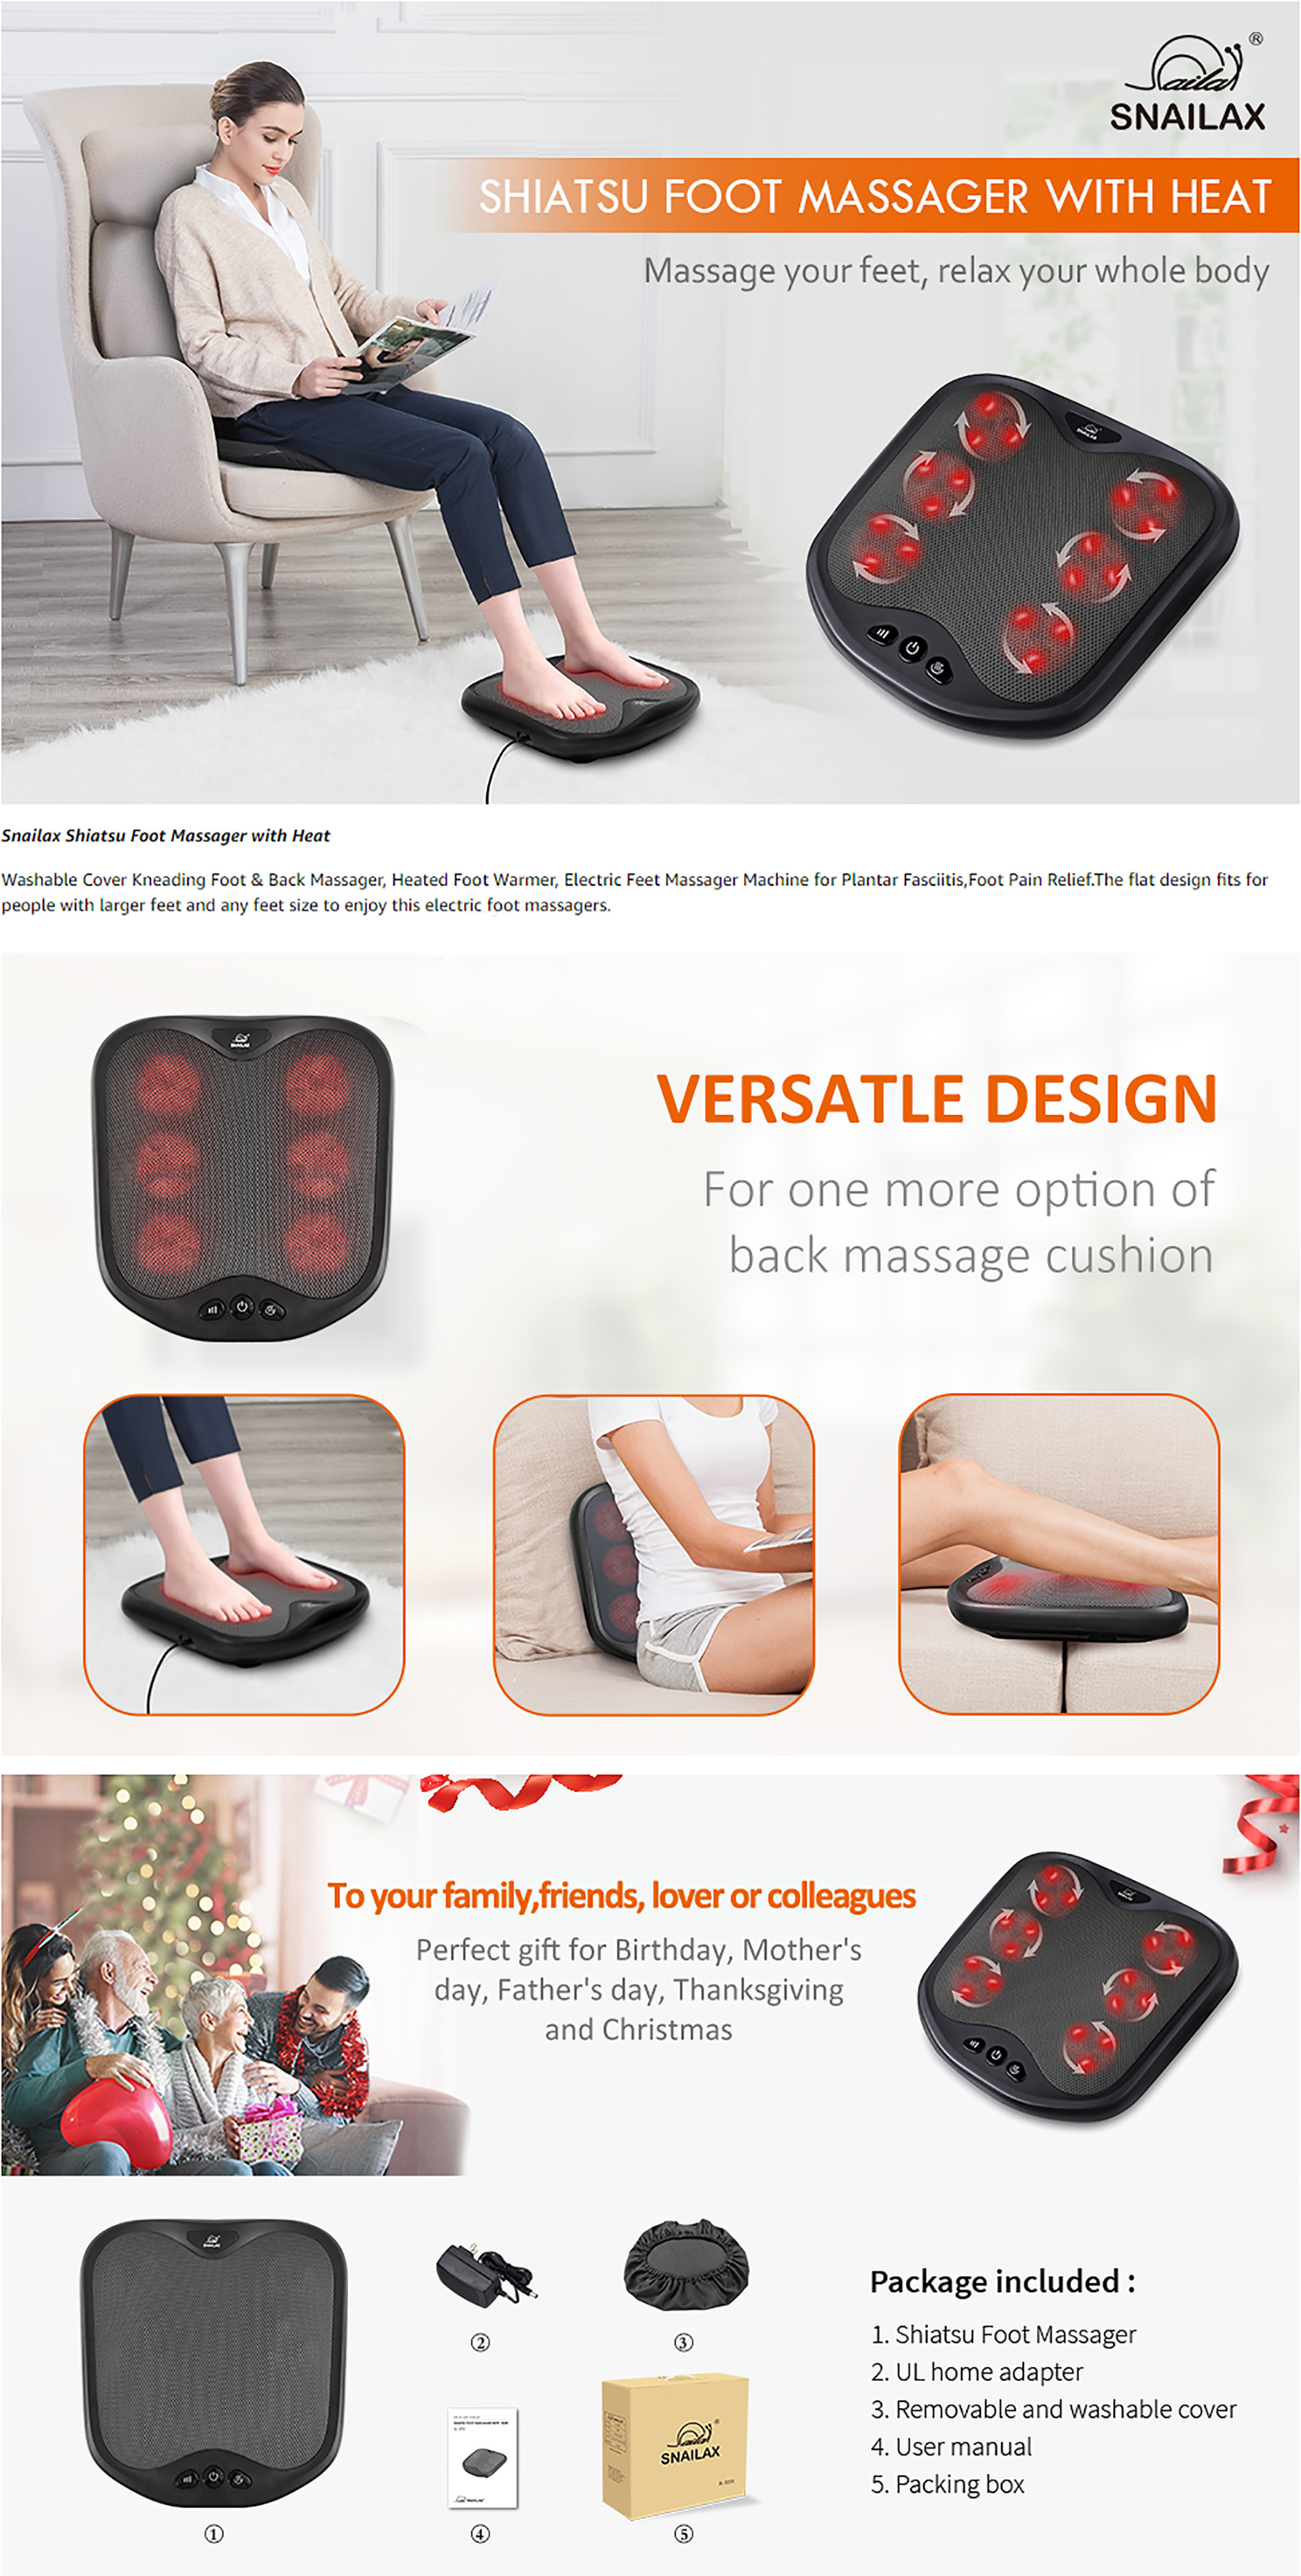 Kneading Foot & Back Massager Features